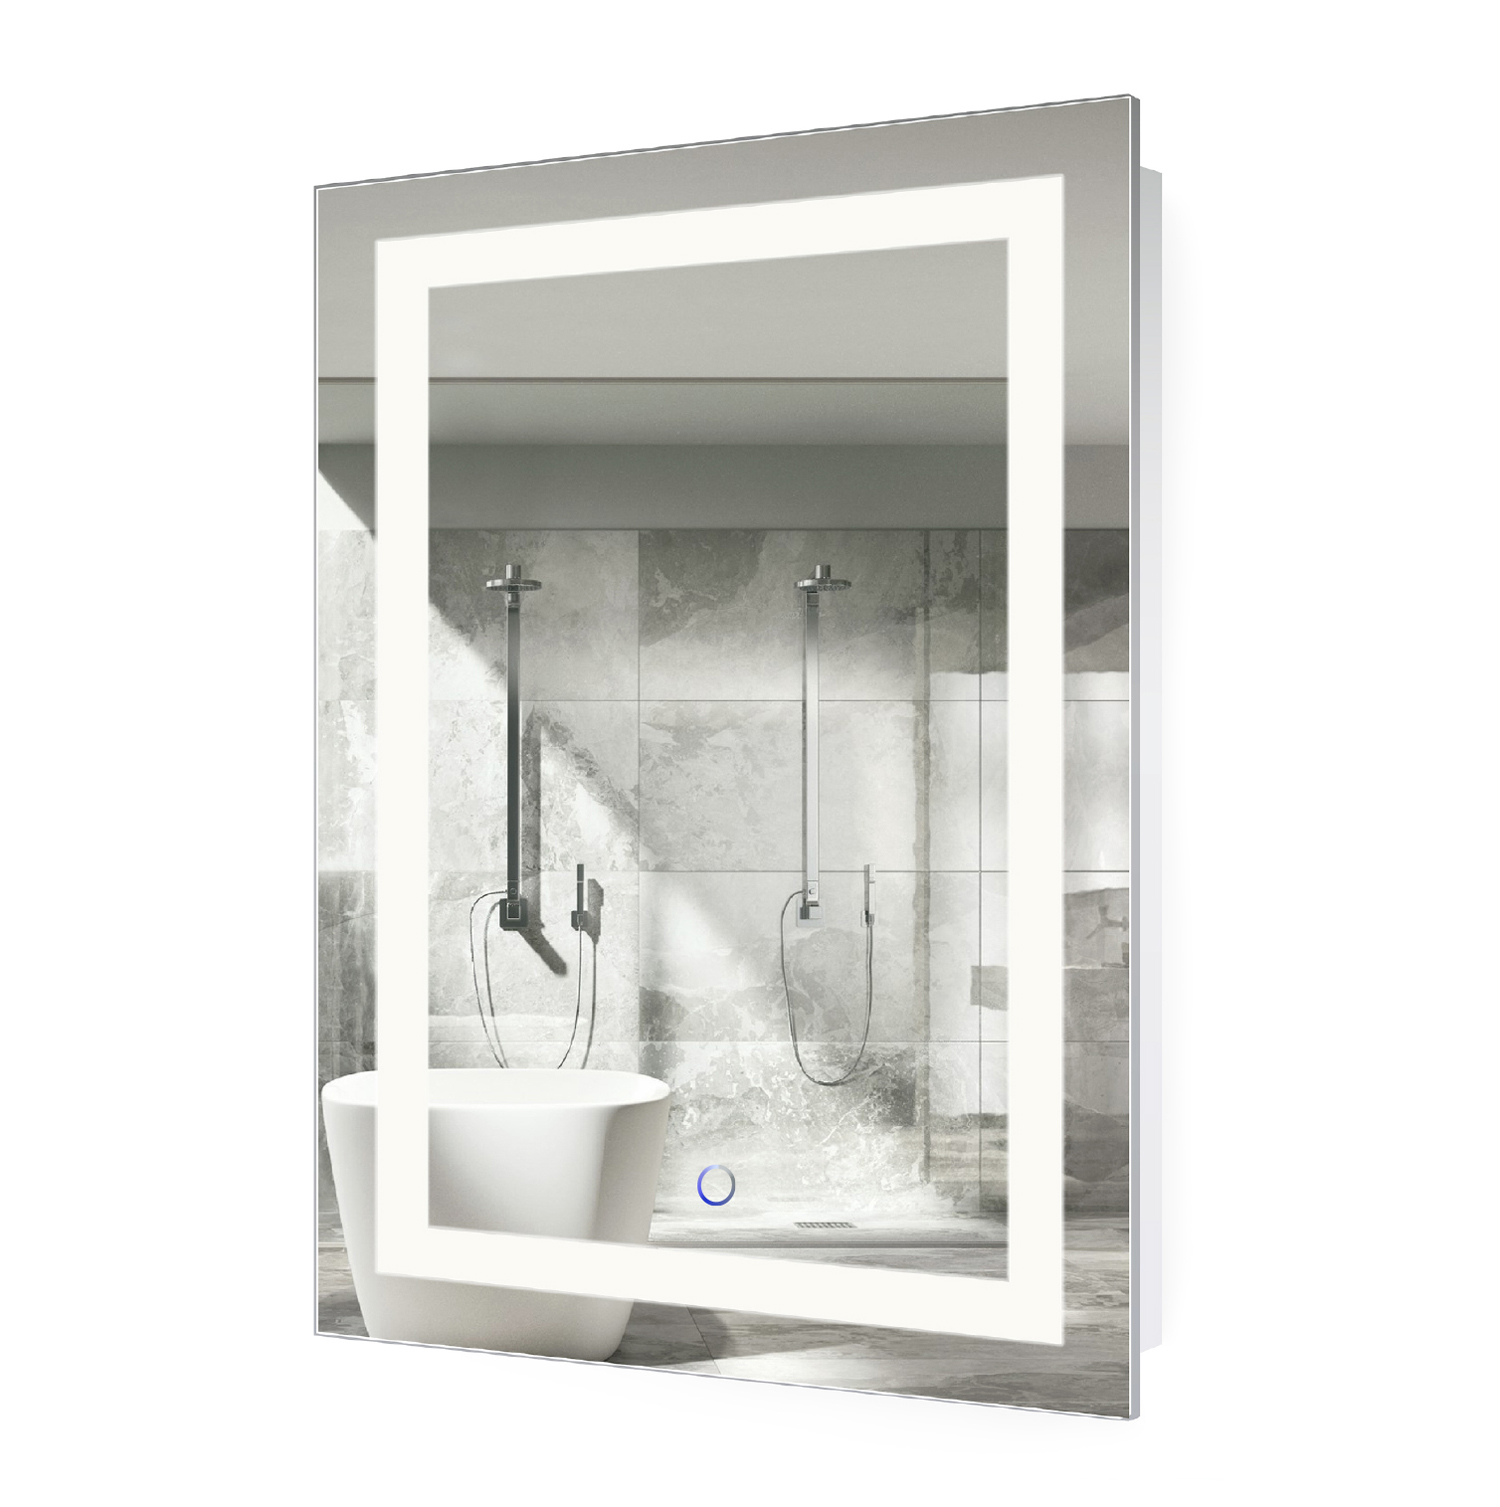 Led Lighted 24 X36 Bathroom Mirror With Dimmer Amp Defogger Krugg Reflections Usa